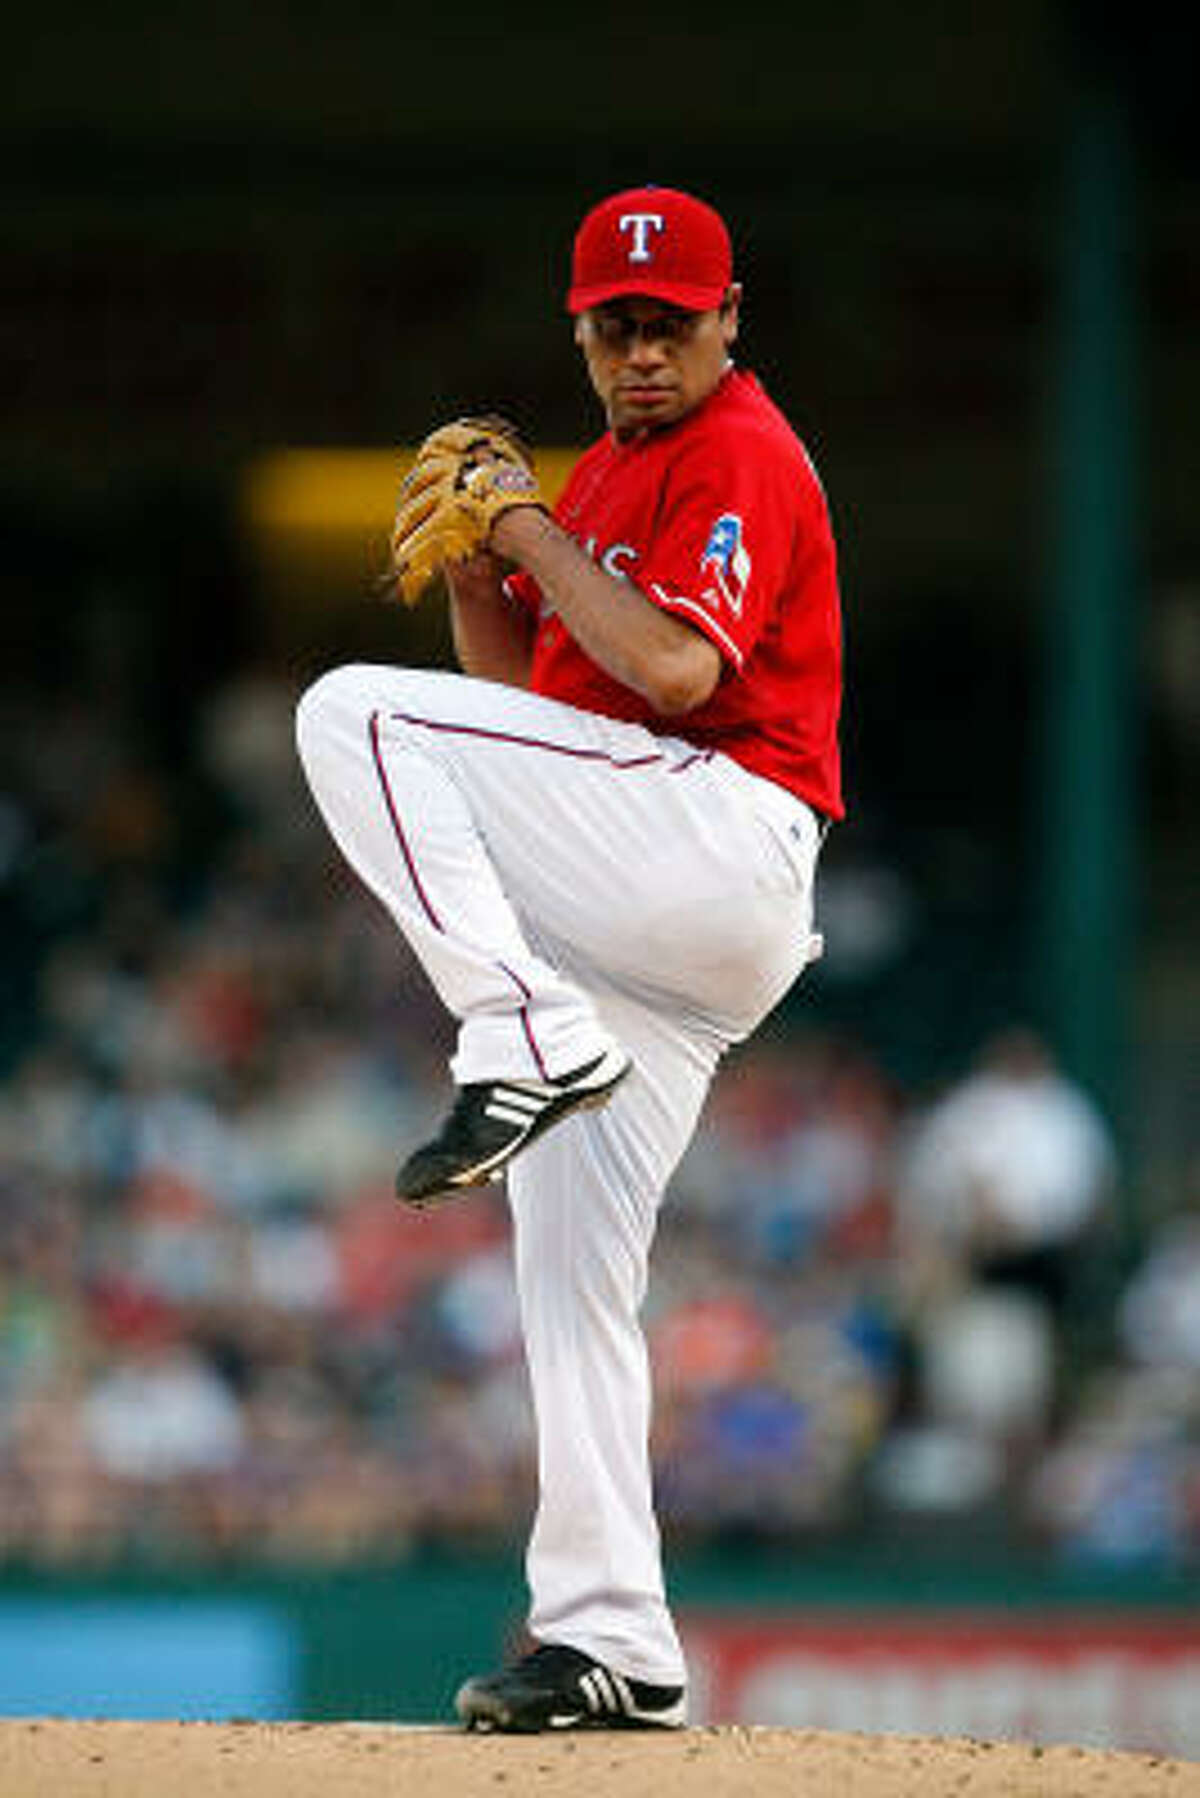 Rangers starter Vicente Padilla gave up three runs on seven hits in six innings of work against the Astros.